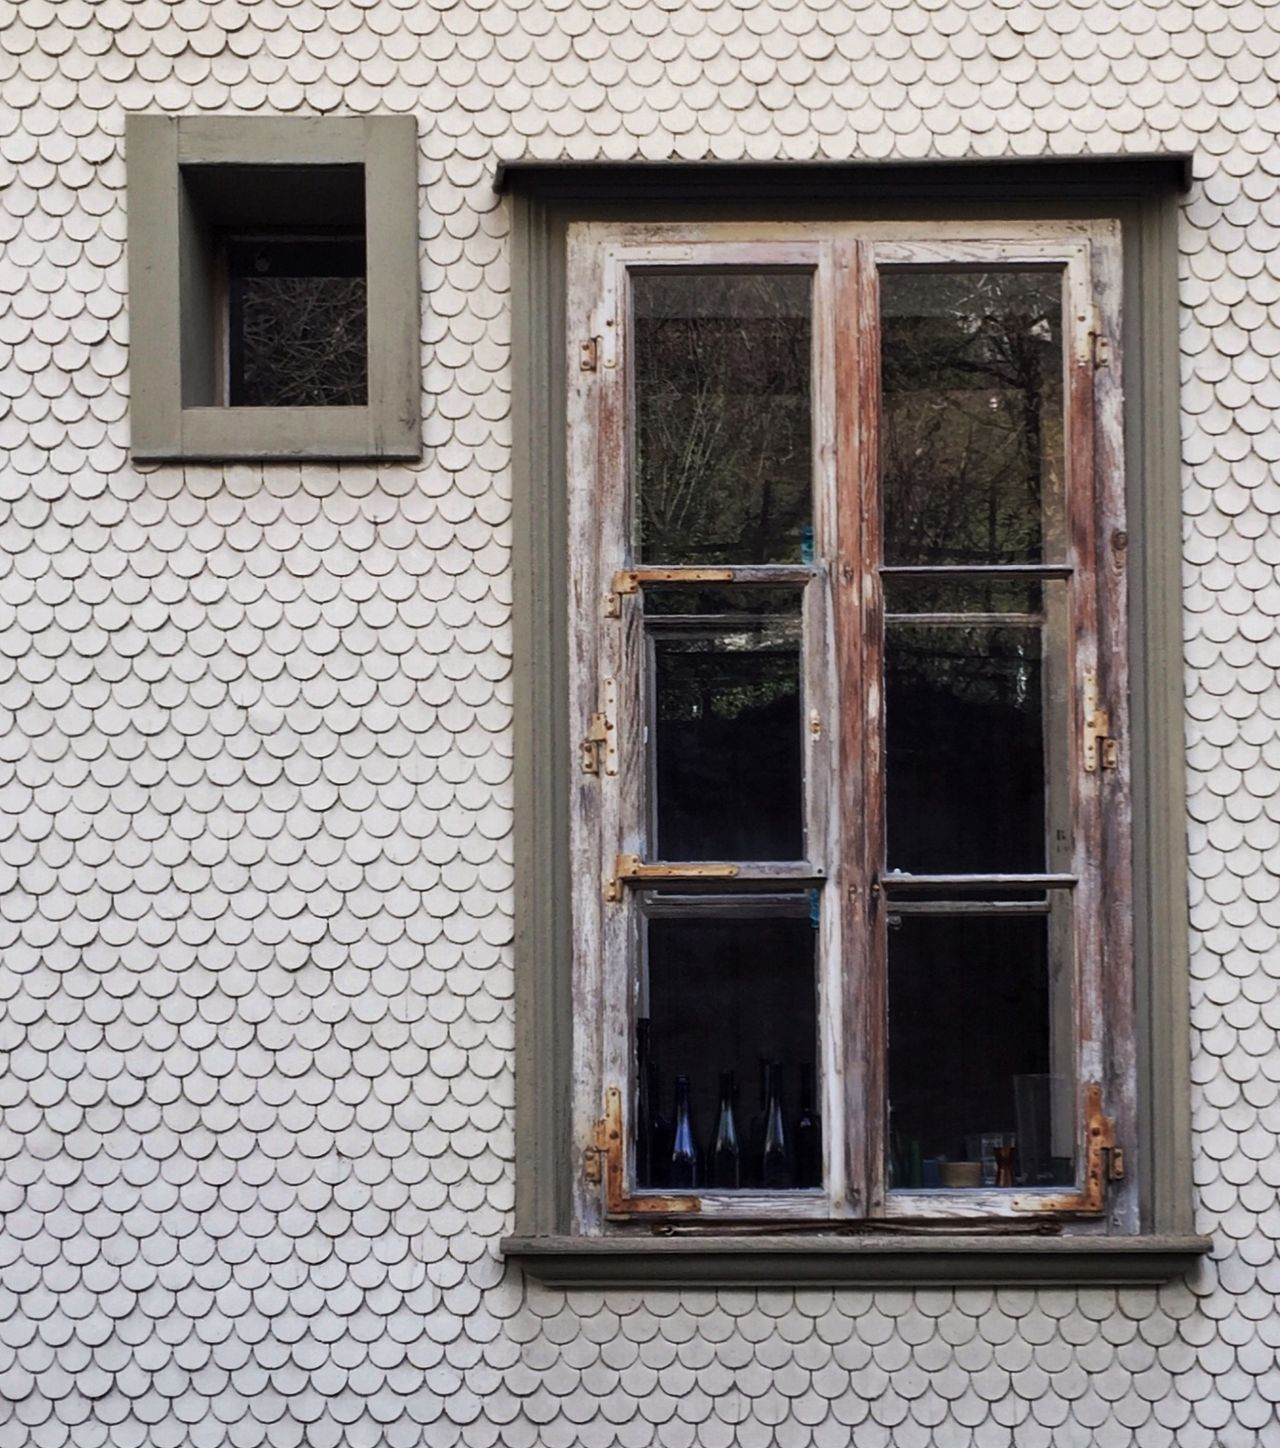 Window Faceofahouse Check This Out IPhoneography From My Point Of View Schindeln Shingles Check This Out Faces Of EyeEm Bern, Switzerland Oldtown Hello World Hi! Hello World